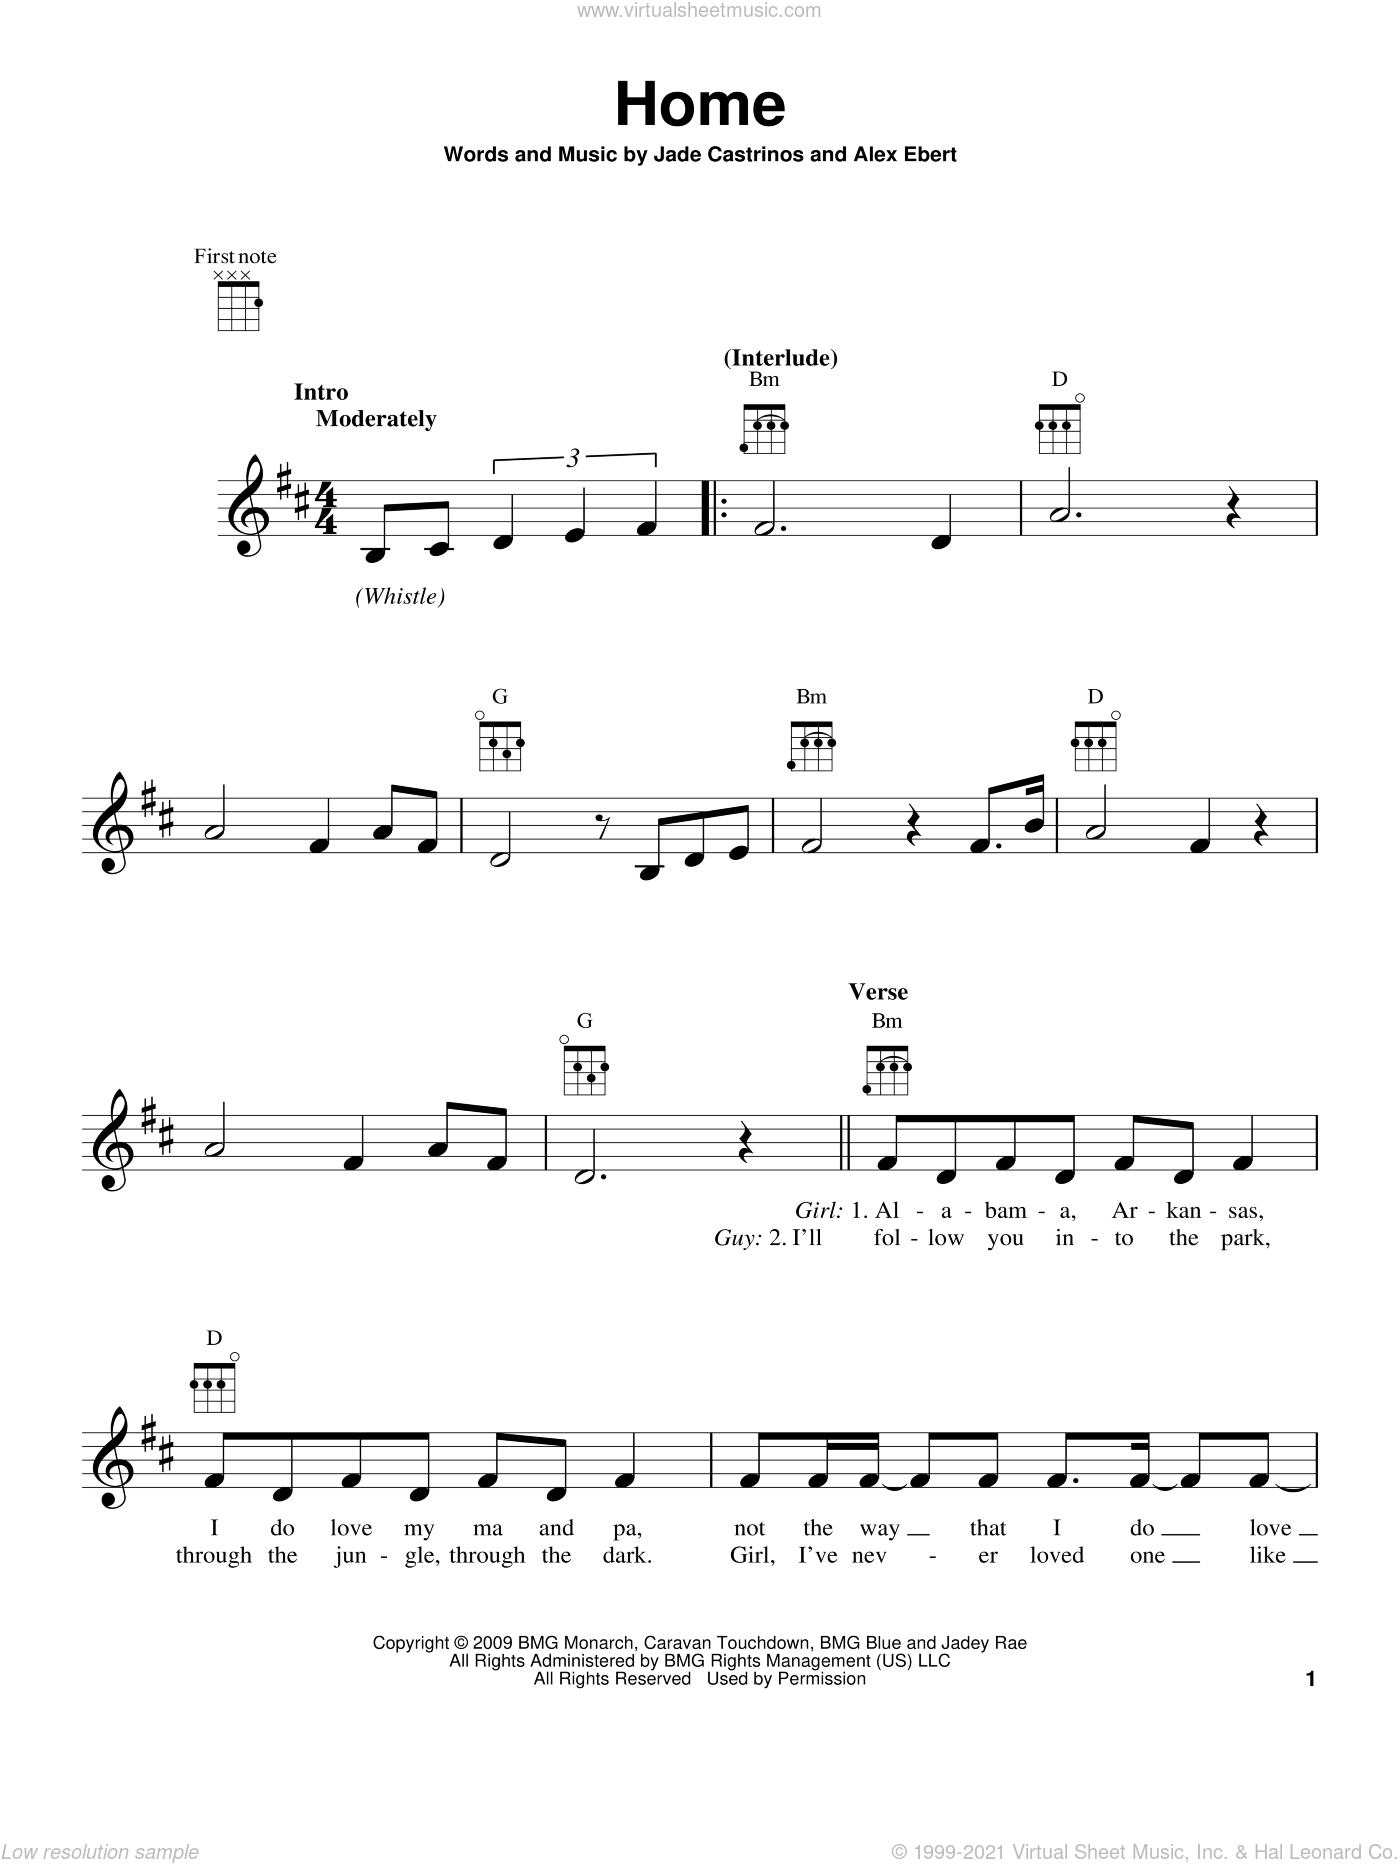 Home sheet music for ukulele by Jade Castrinos